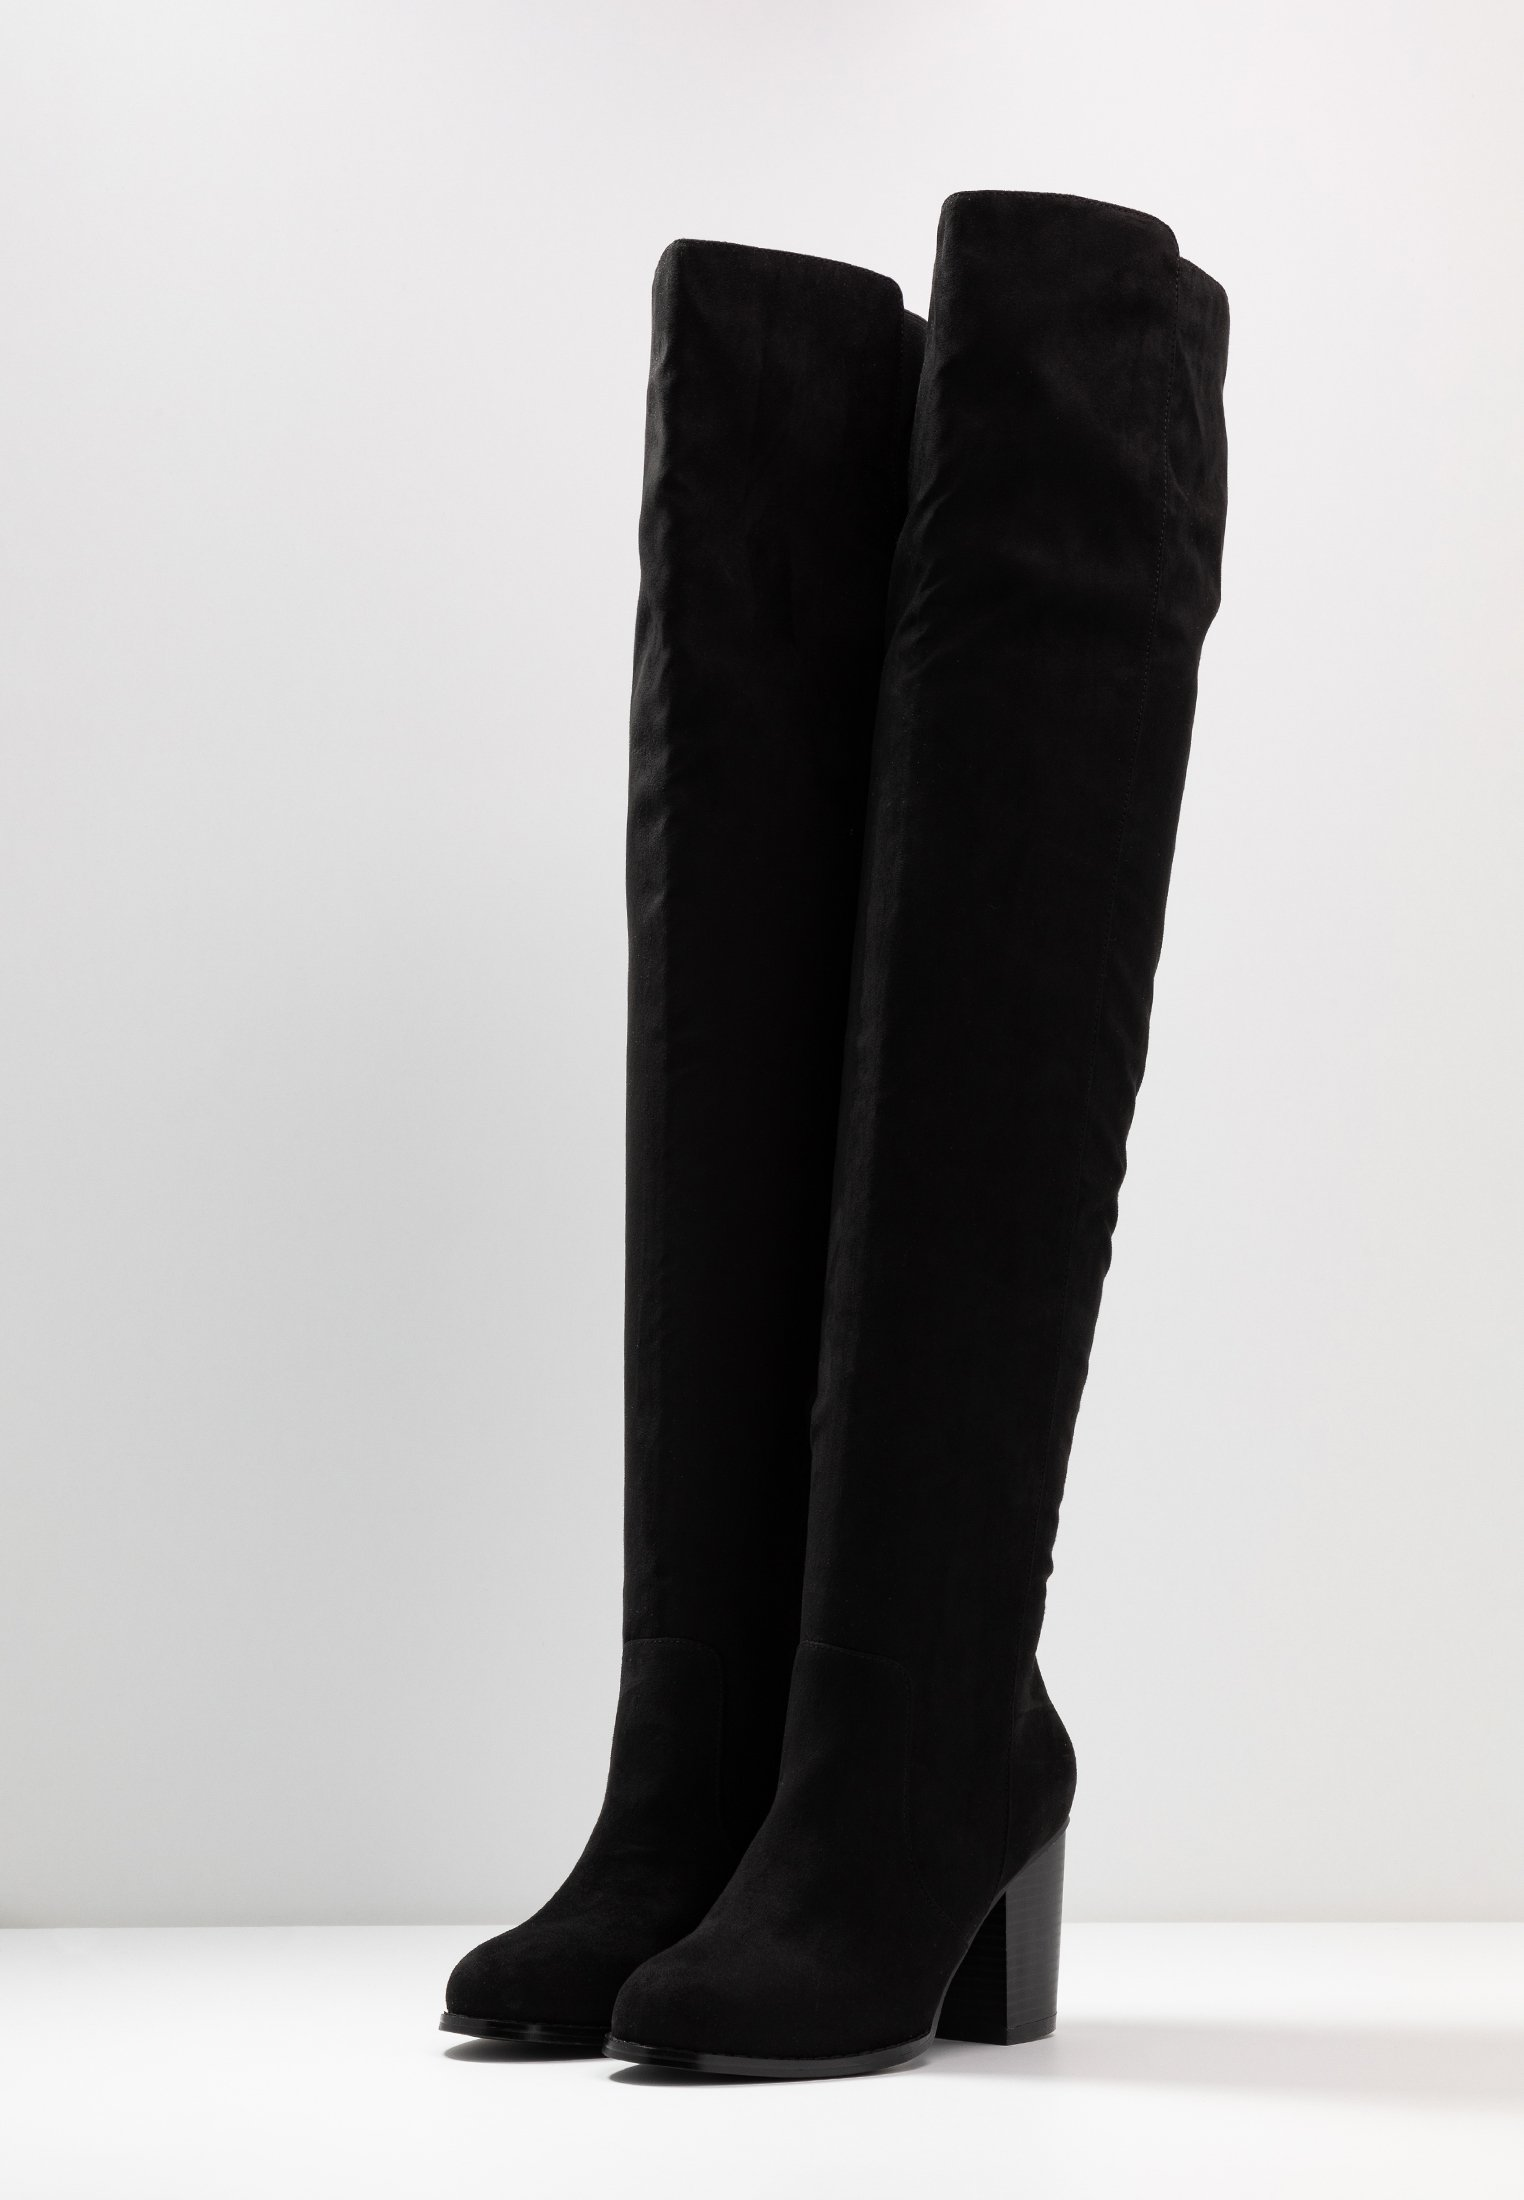 Nly by Nelly THIGH HIGH WOOD HEEL - Overkneeskor - black